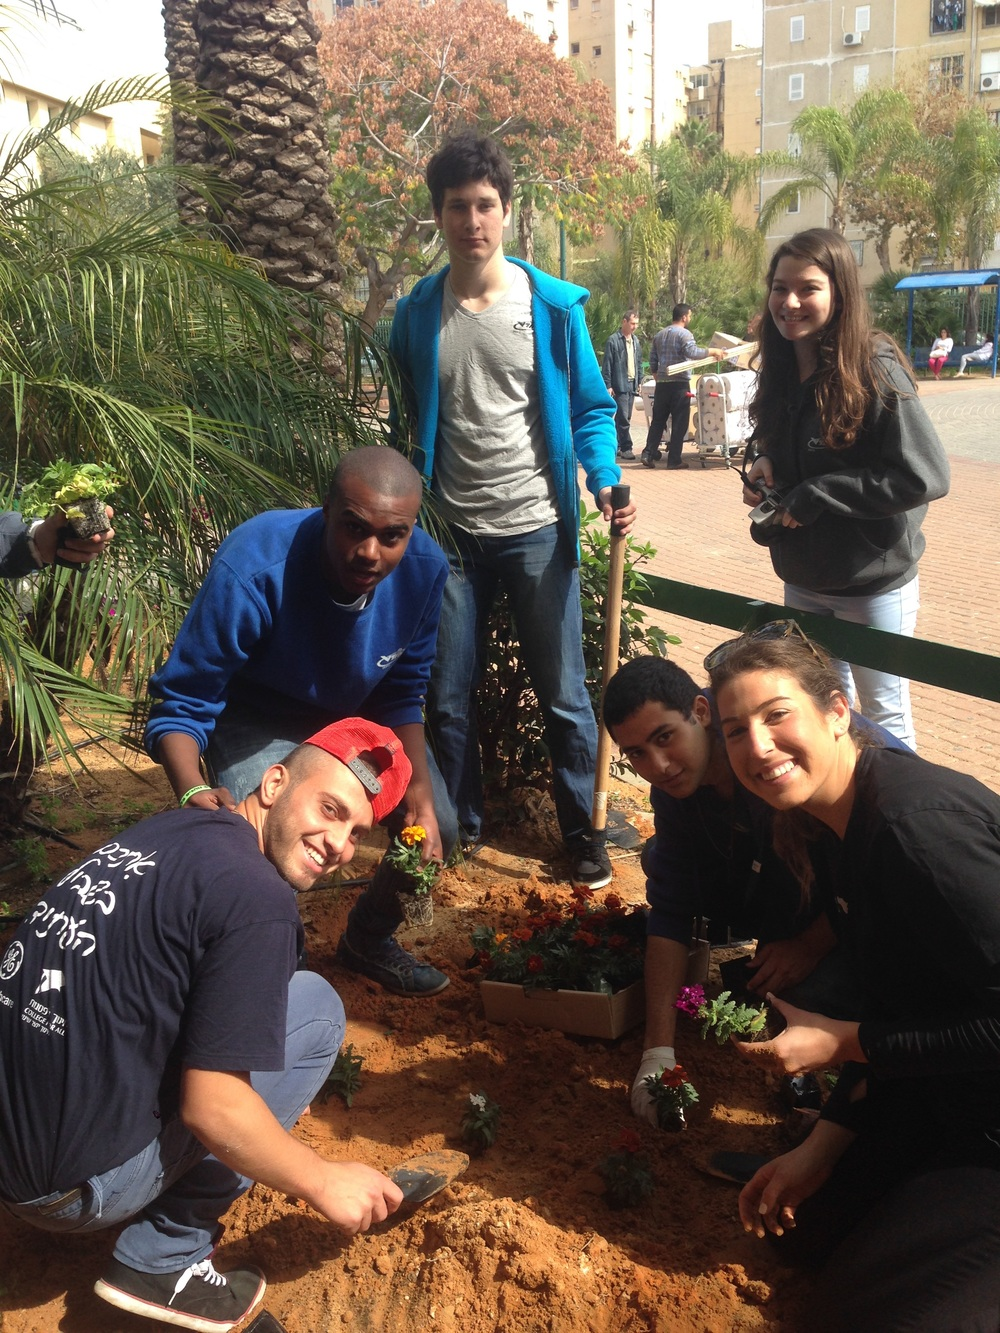 Innovation: Africa's Israel team cleans up a community park with students from the Ort Guttman High School in Netanya. Credit: Innovation: Africa.